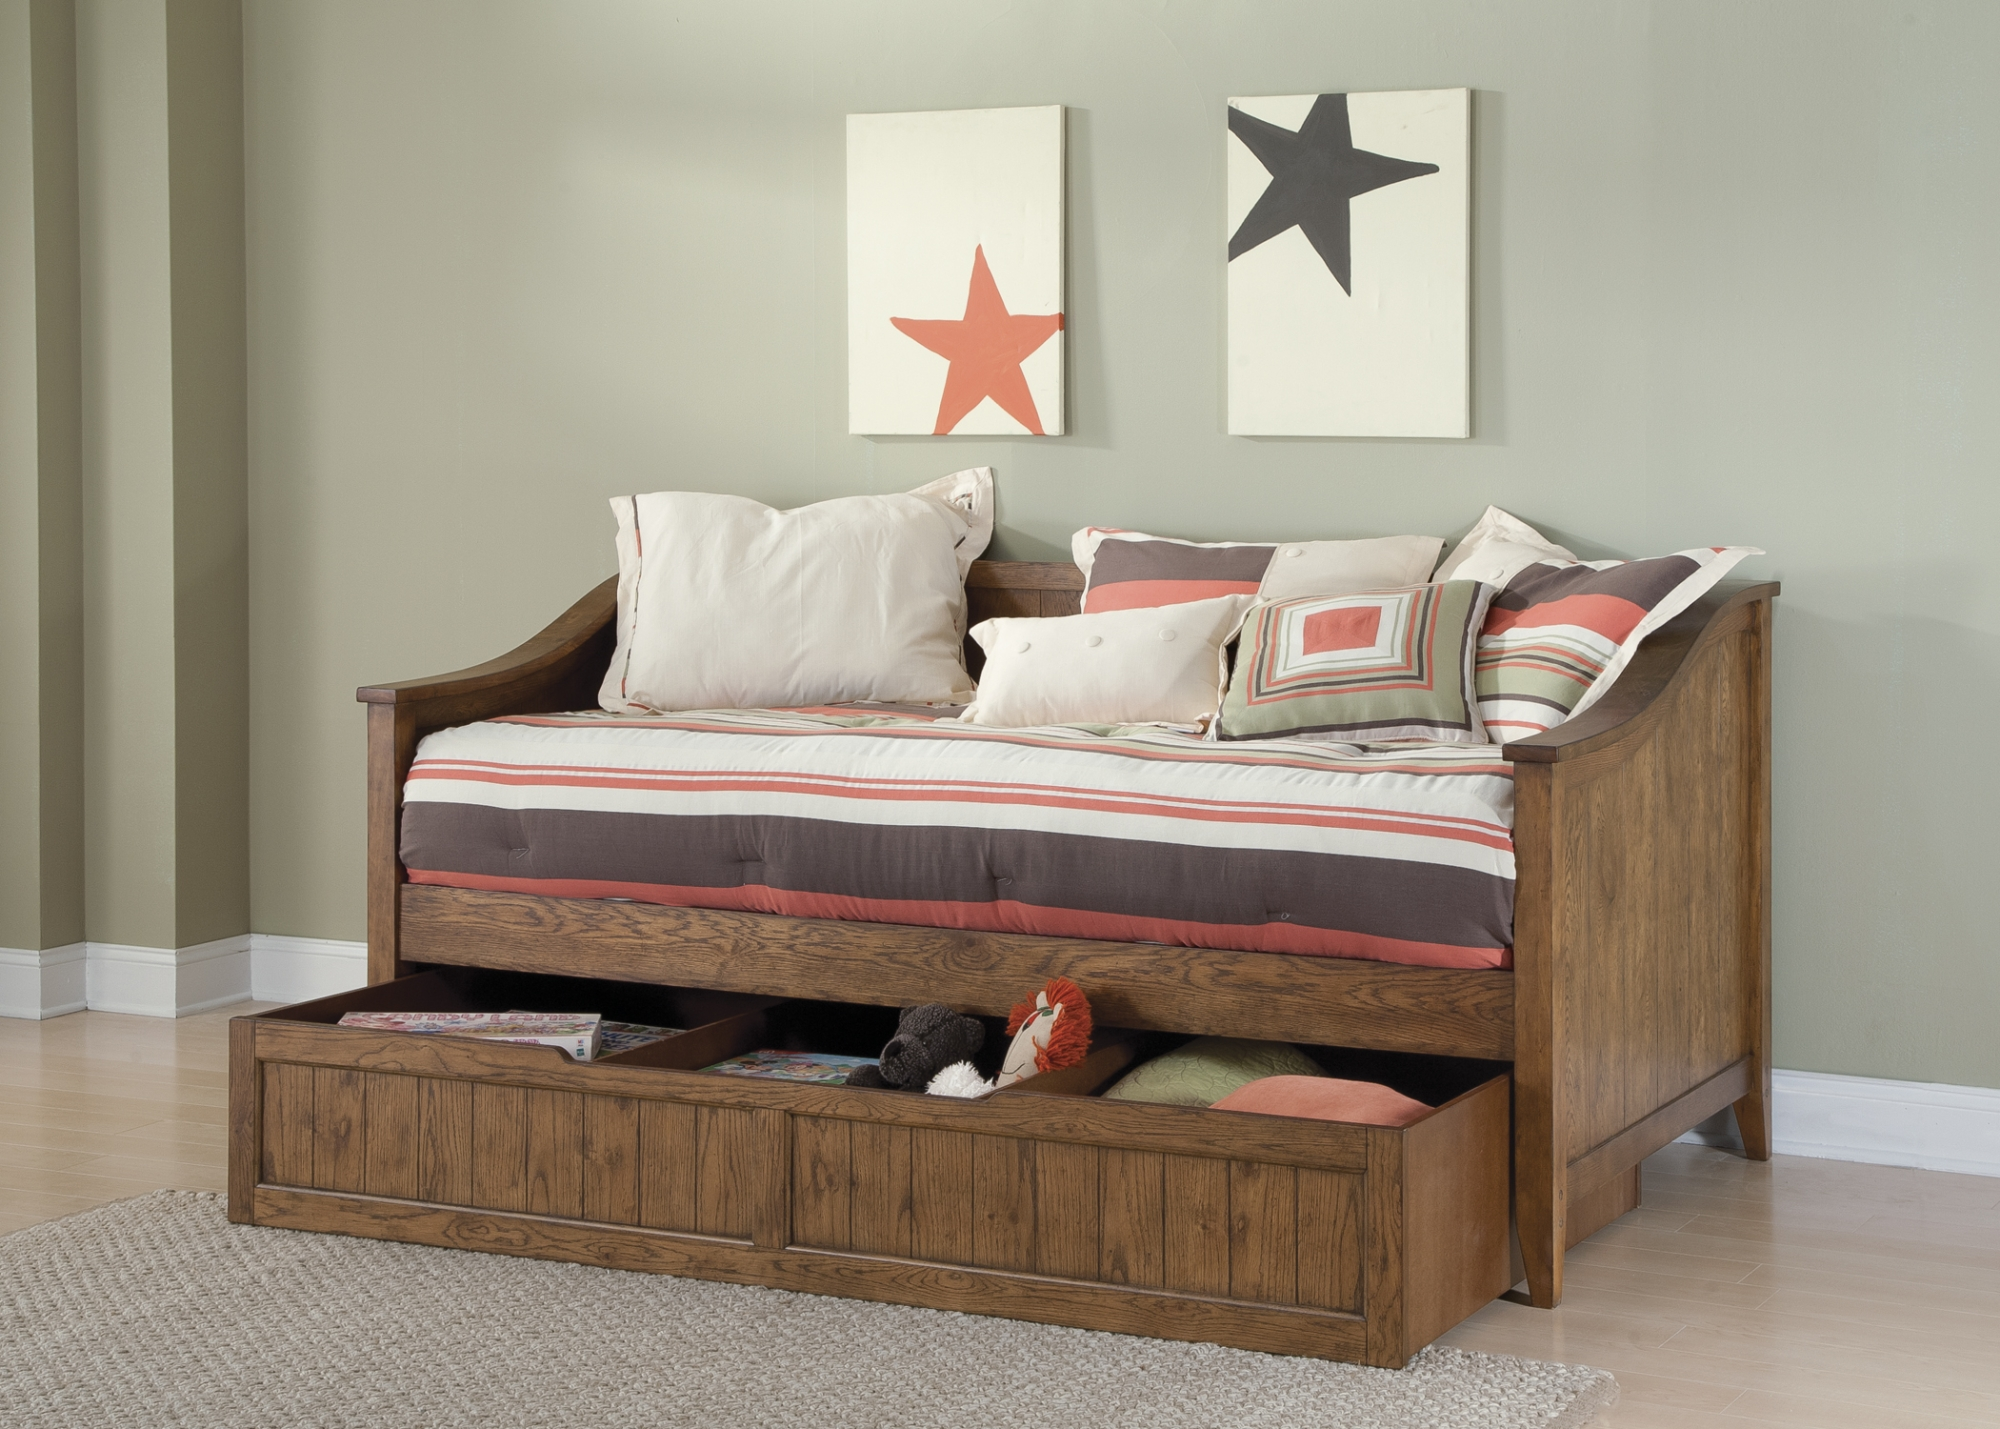 Best daybed with storage for small bedroom design with full size daybed with storage